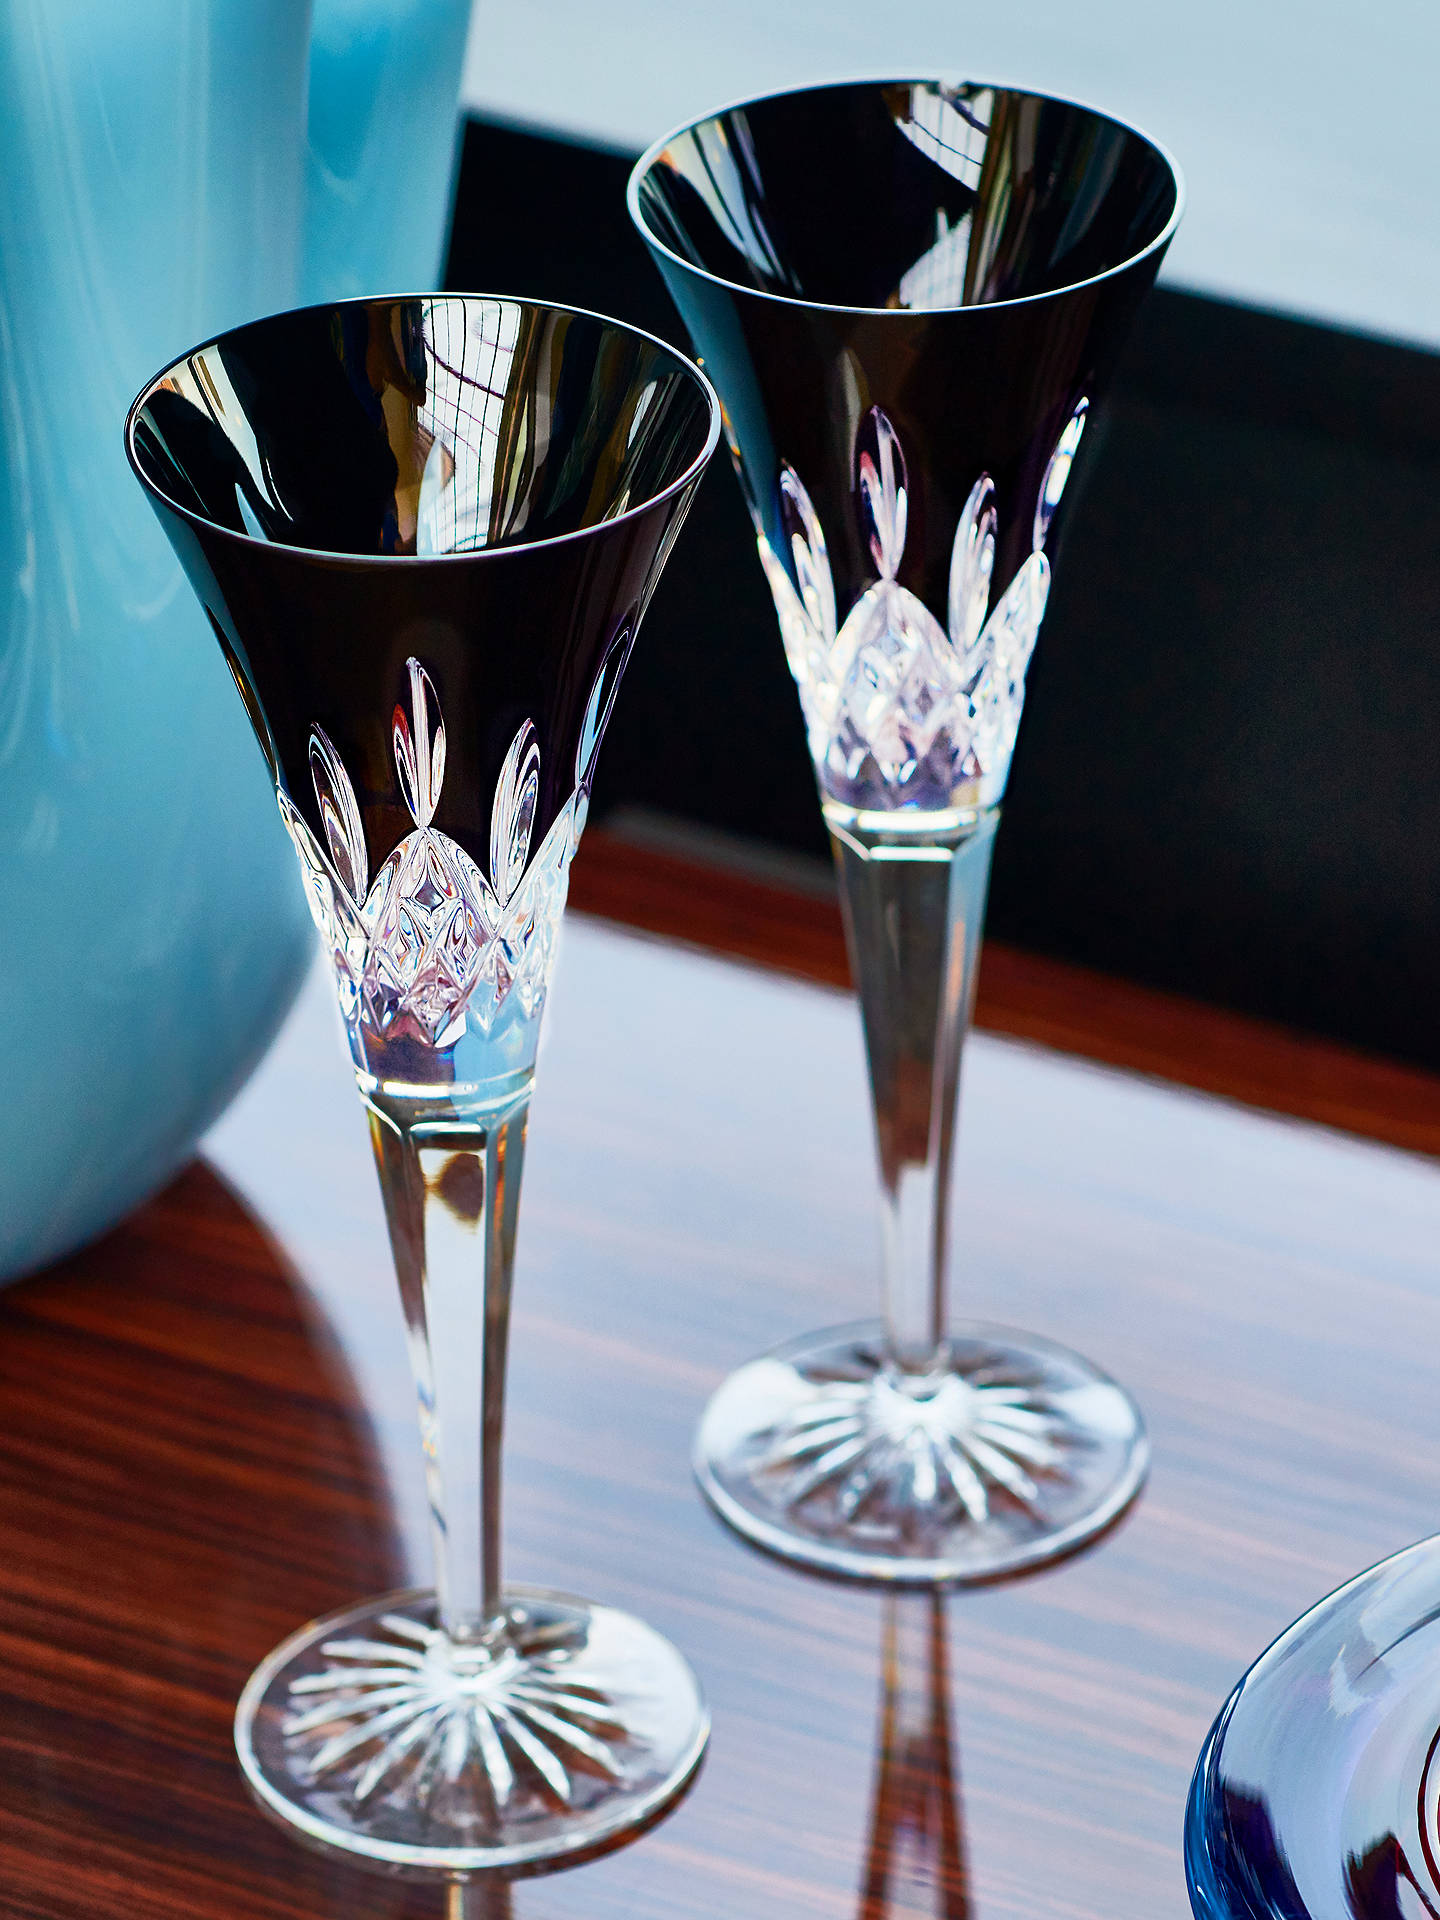 Buy Waterford 'Lismore Pops' Cut Crystal Toasting Flute, Set of 2, 160ml, Black Online at johnlewis.com